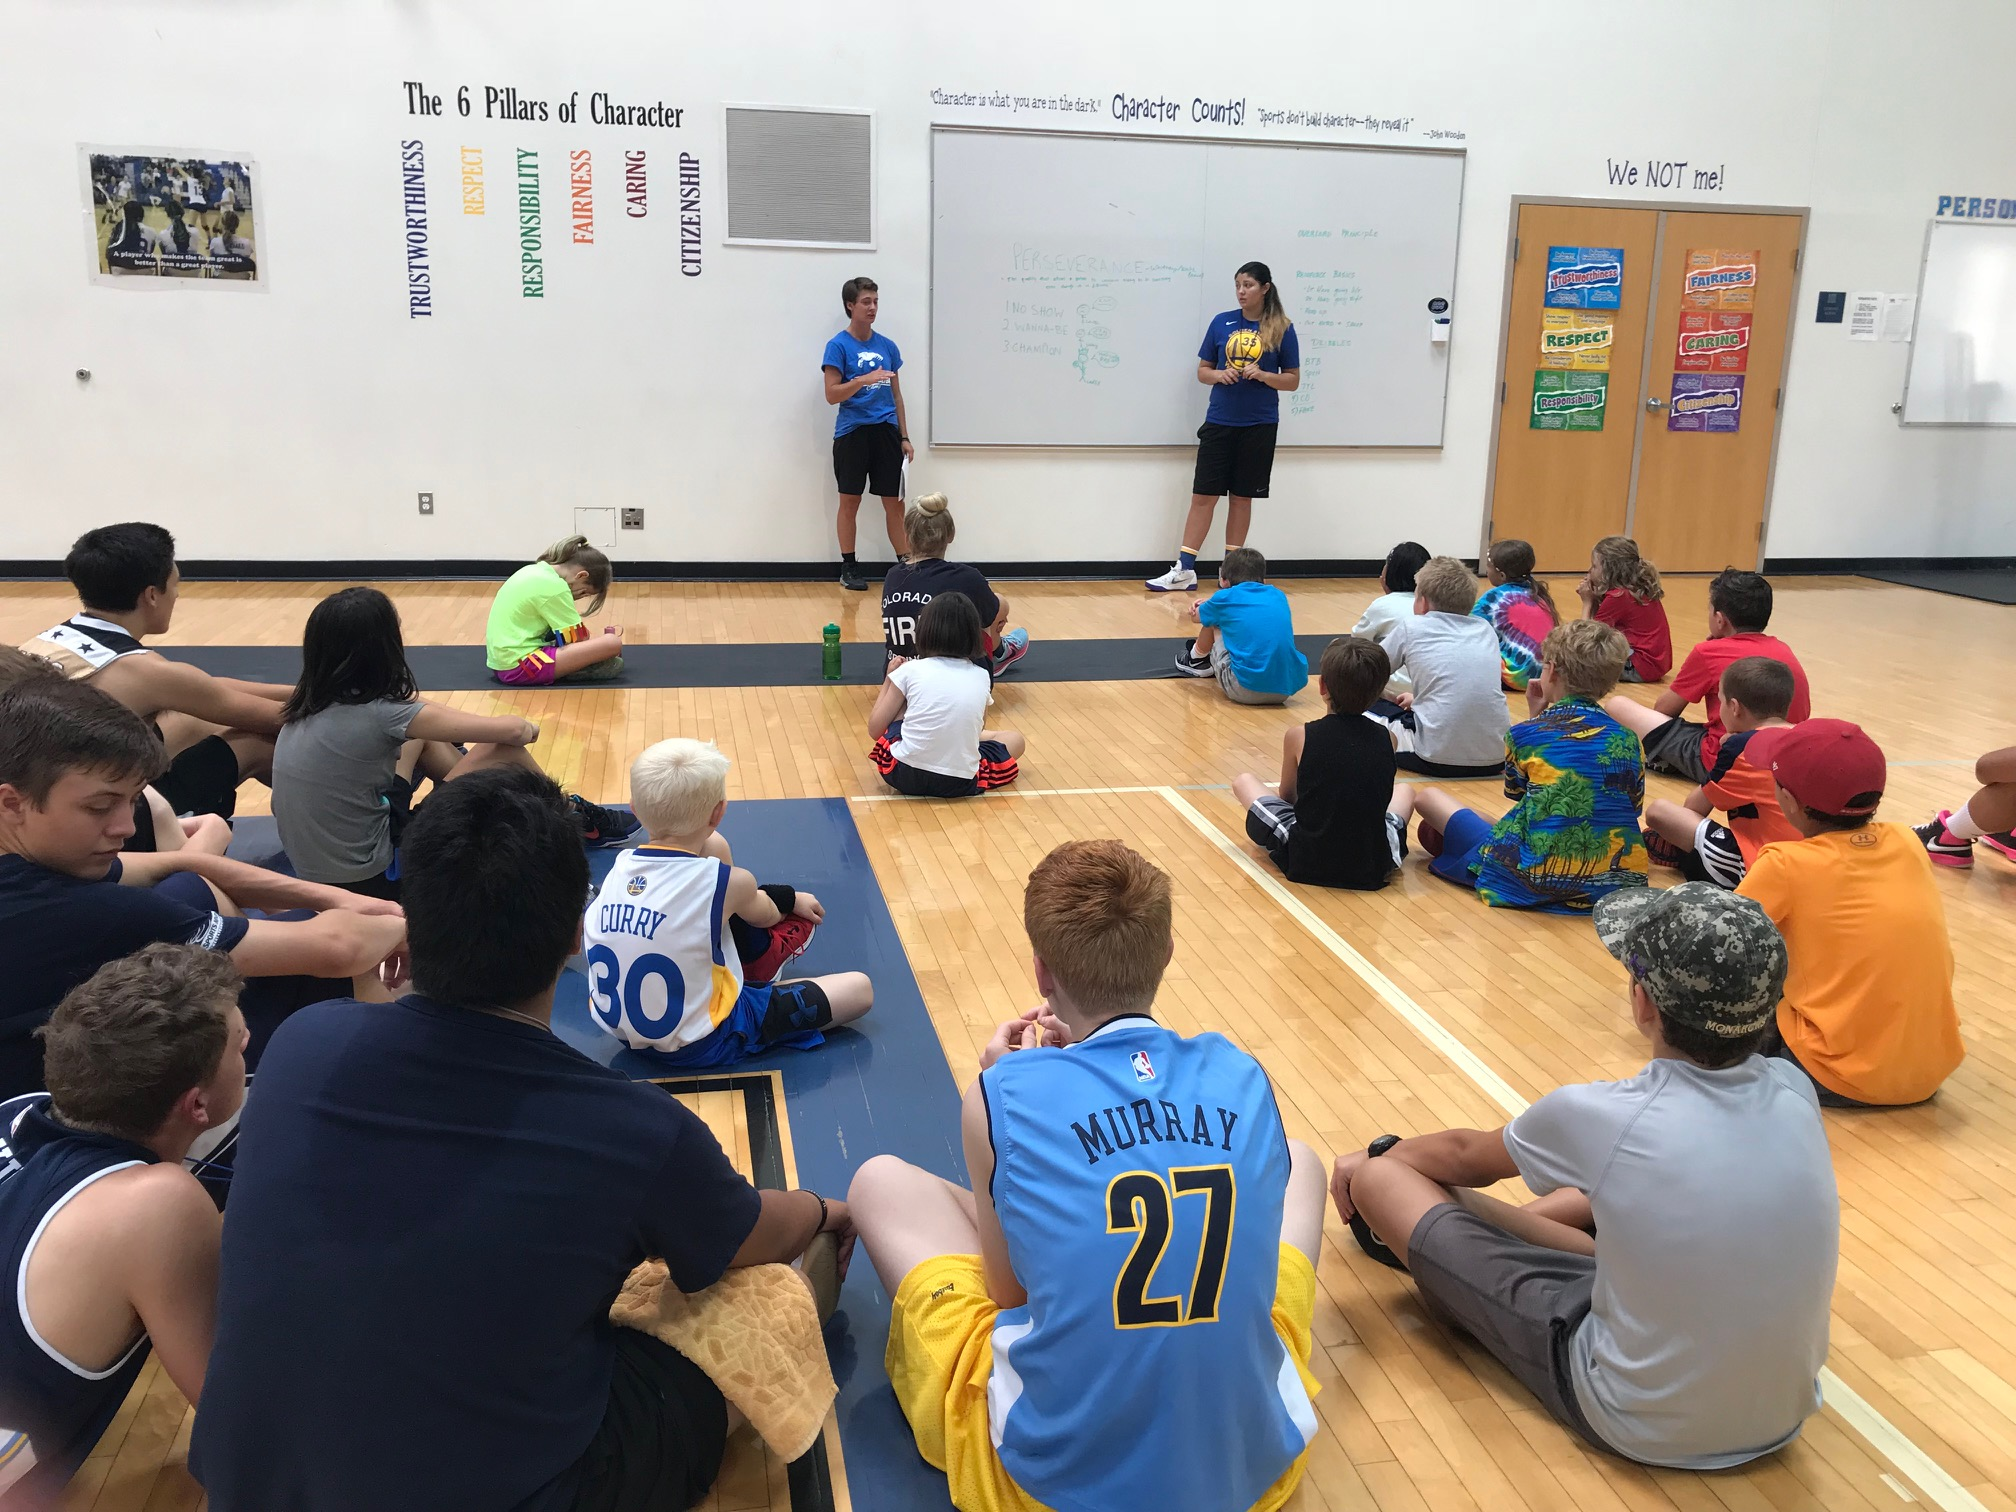 Summer Sports Camps: Teaching the FUNdamentals